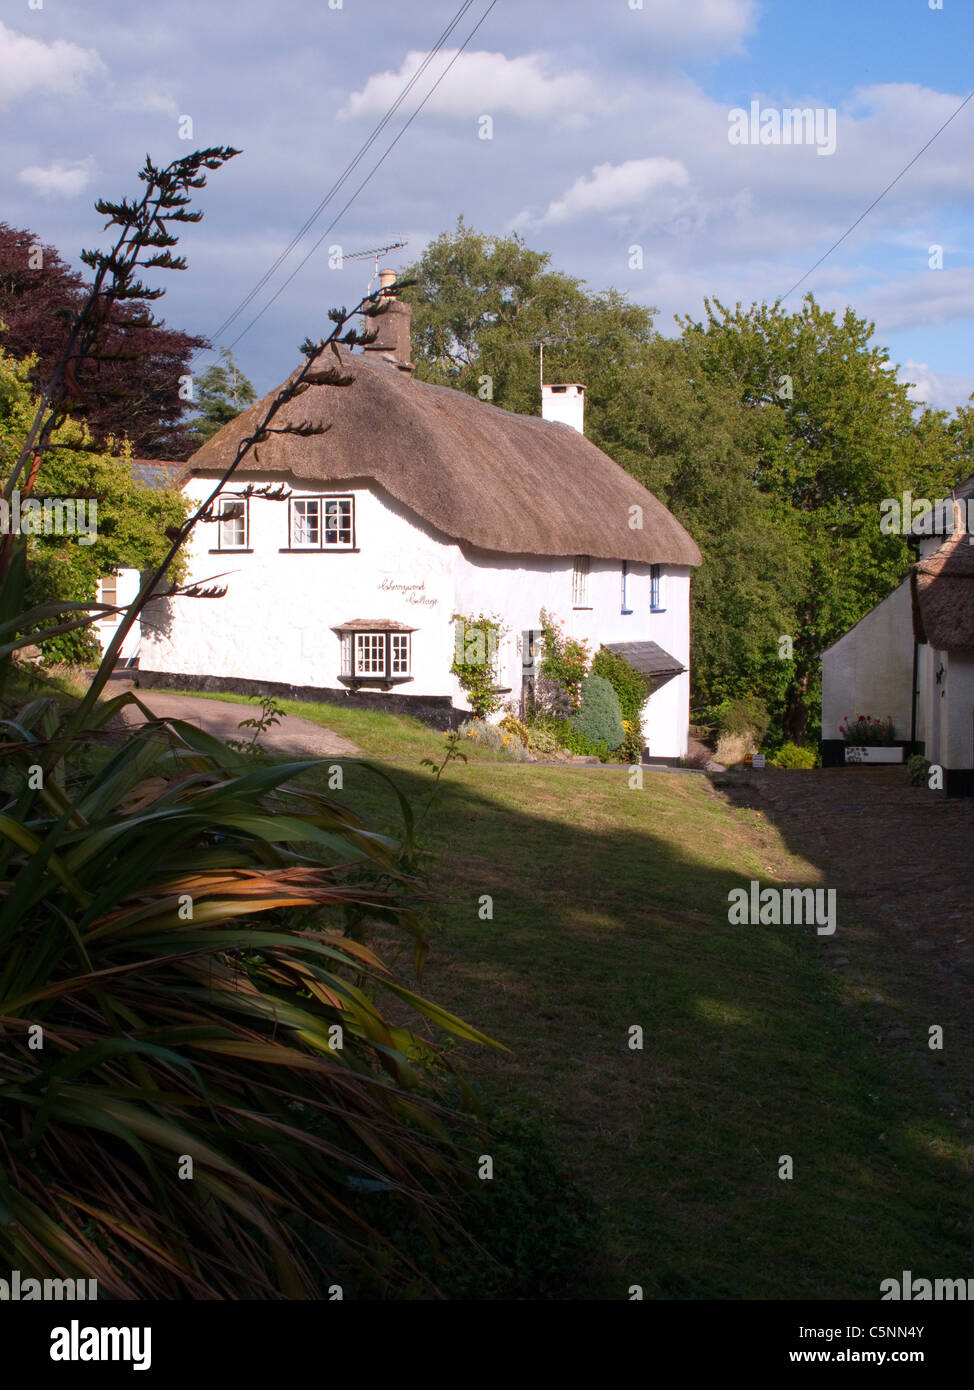 Traditional thatched cottage, North Bovey, Dartmoor, Devon, England, UK, - Stock Image